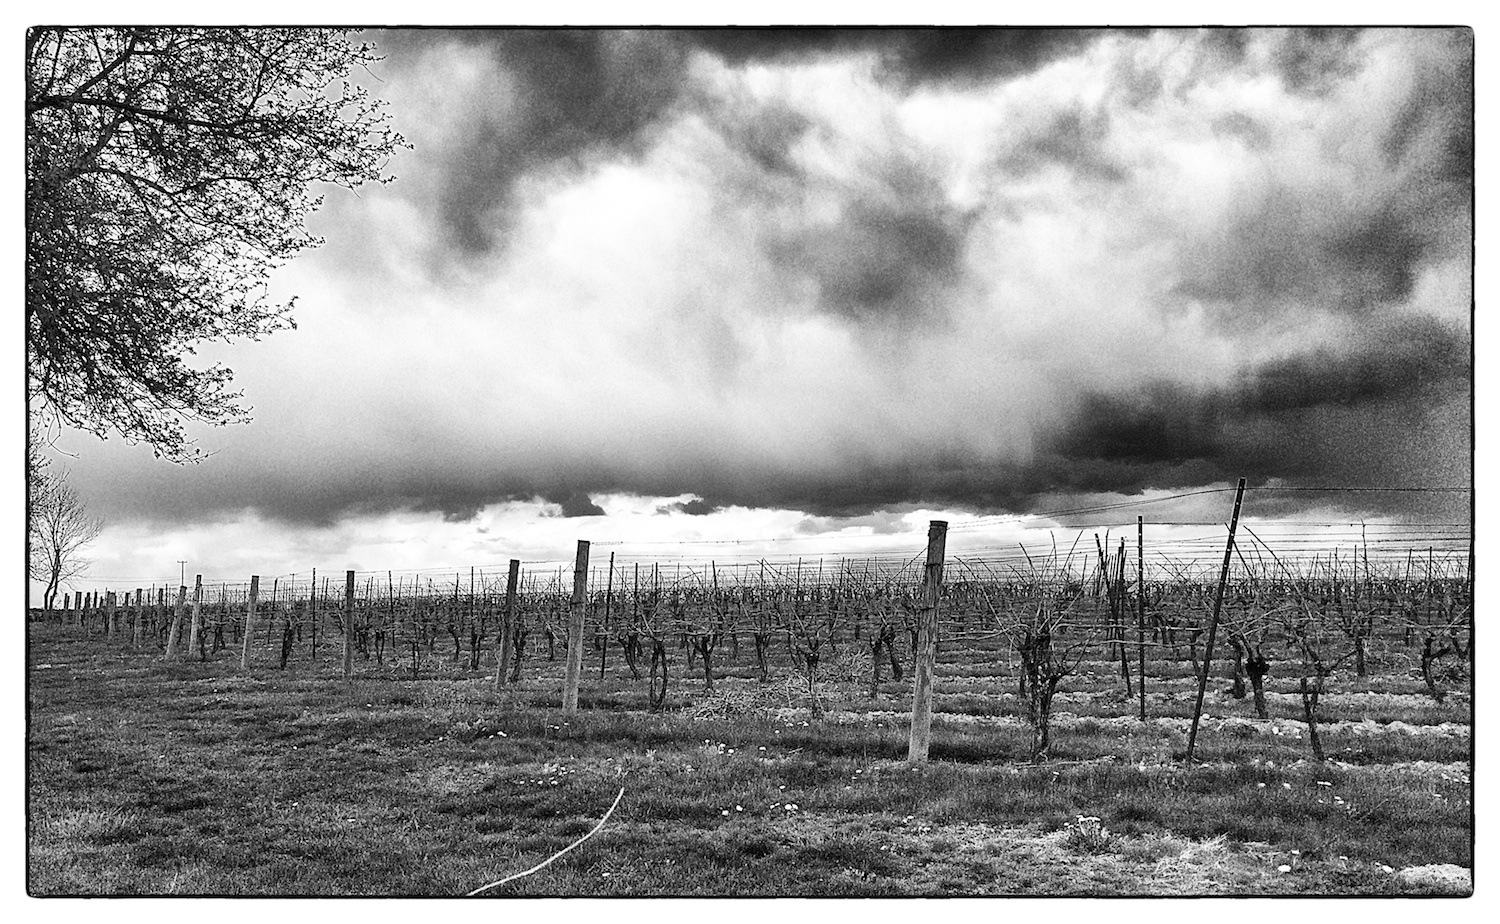 Storm clouds gather over  Jonathan Edwards Winery  in North Stonington, Conn., shot on May 4, 2014.